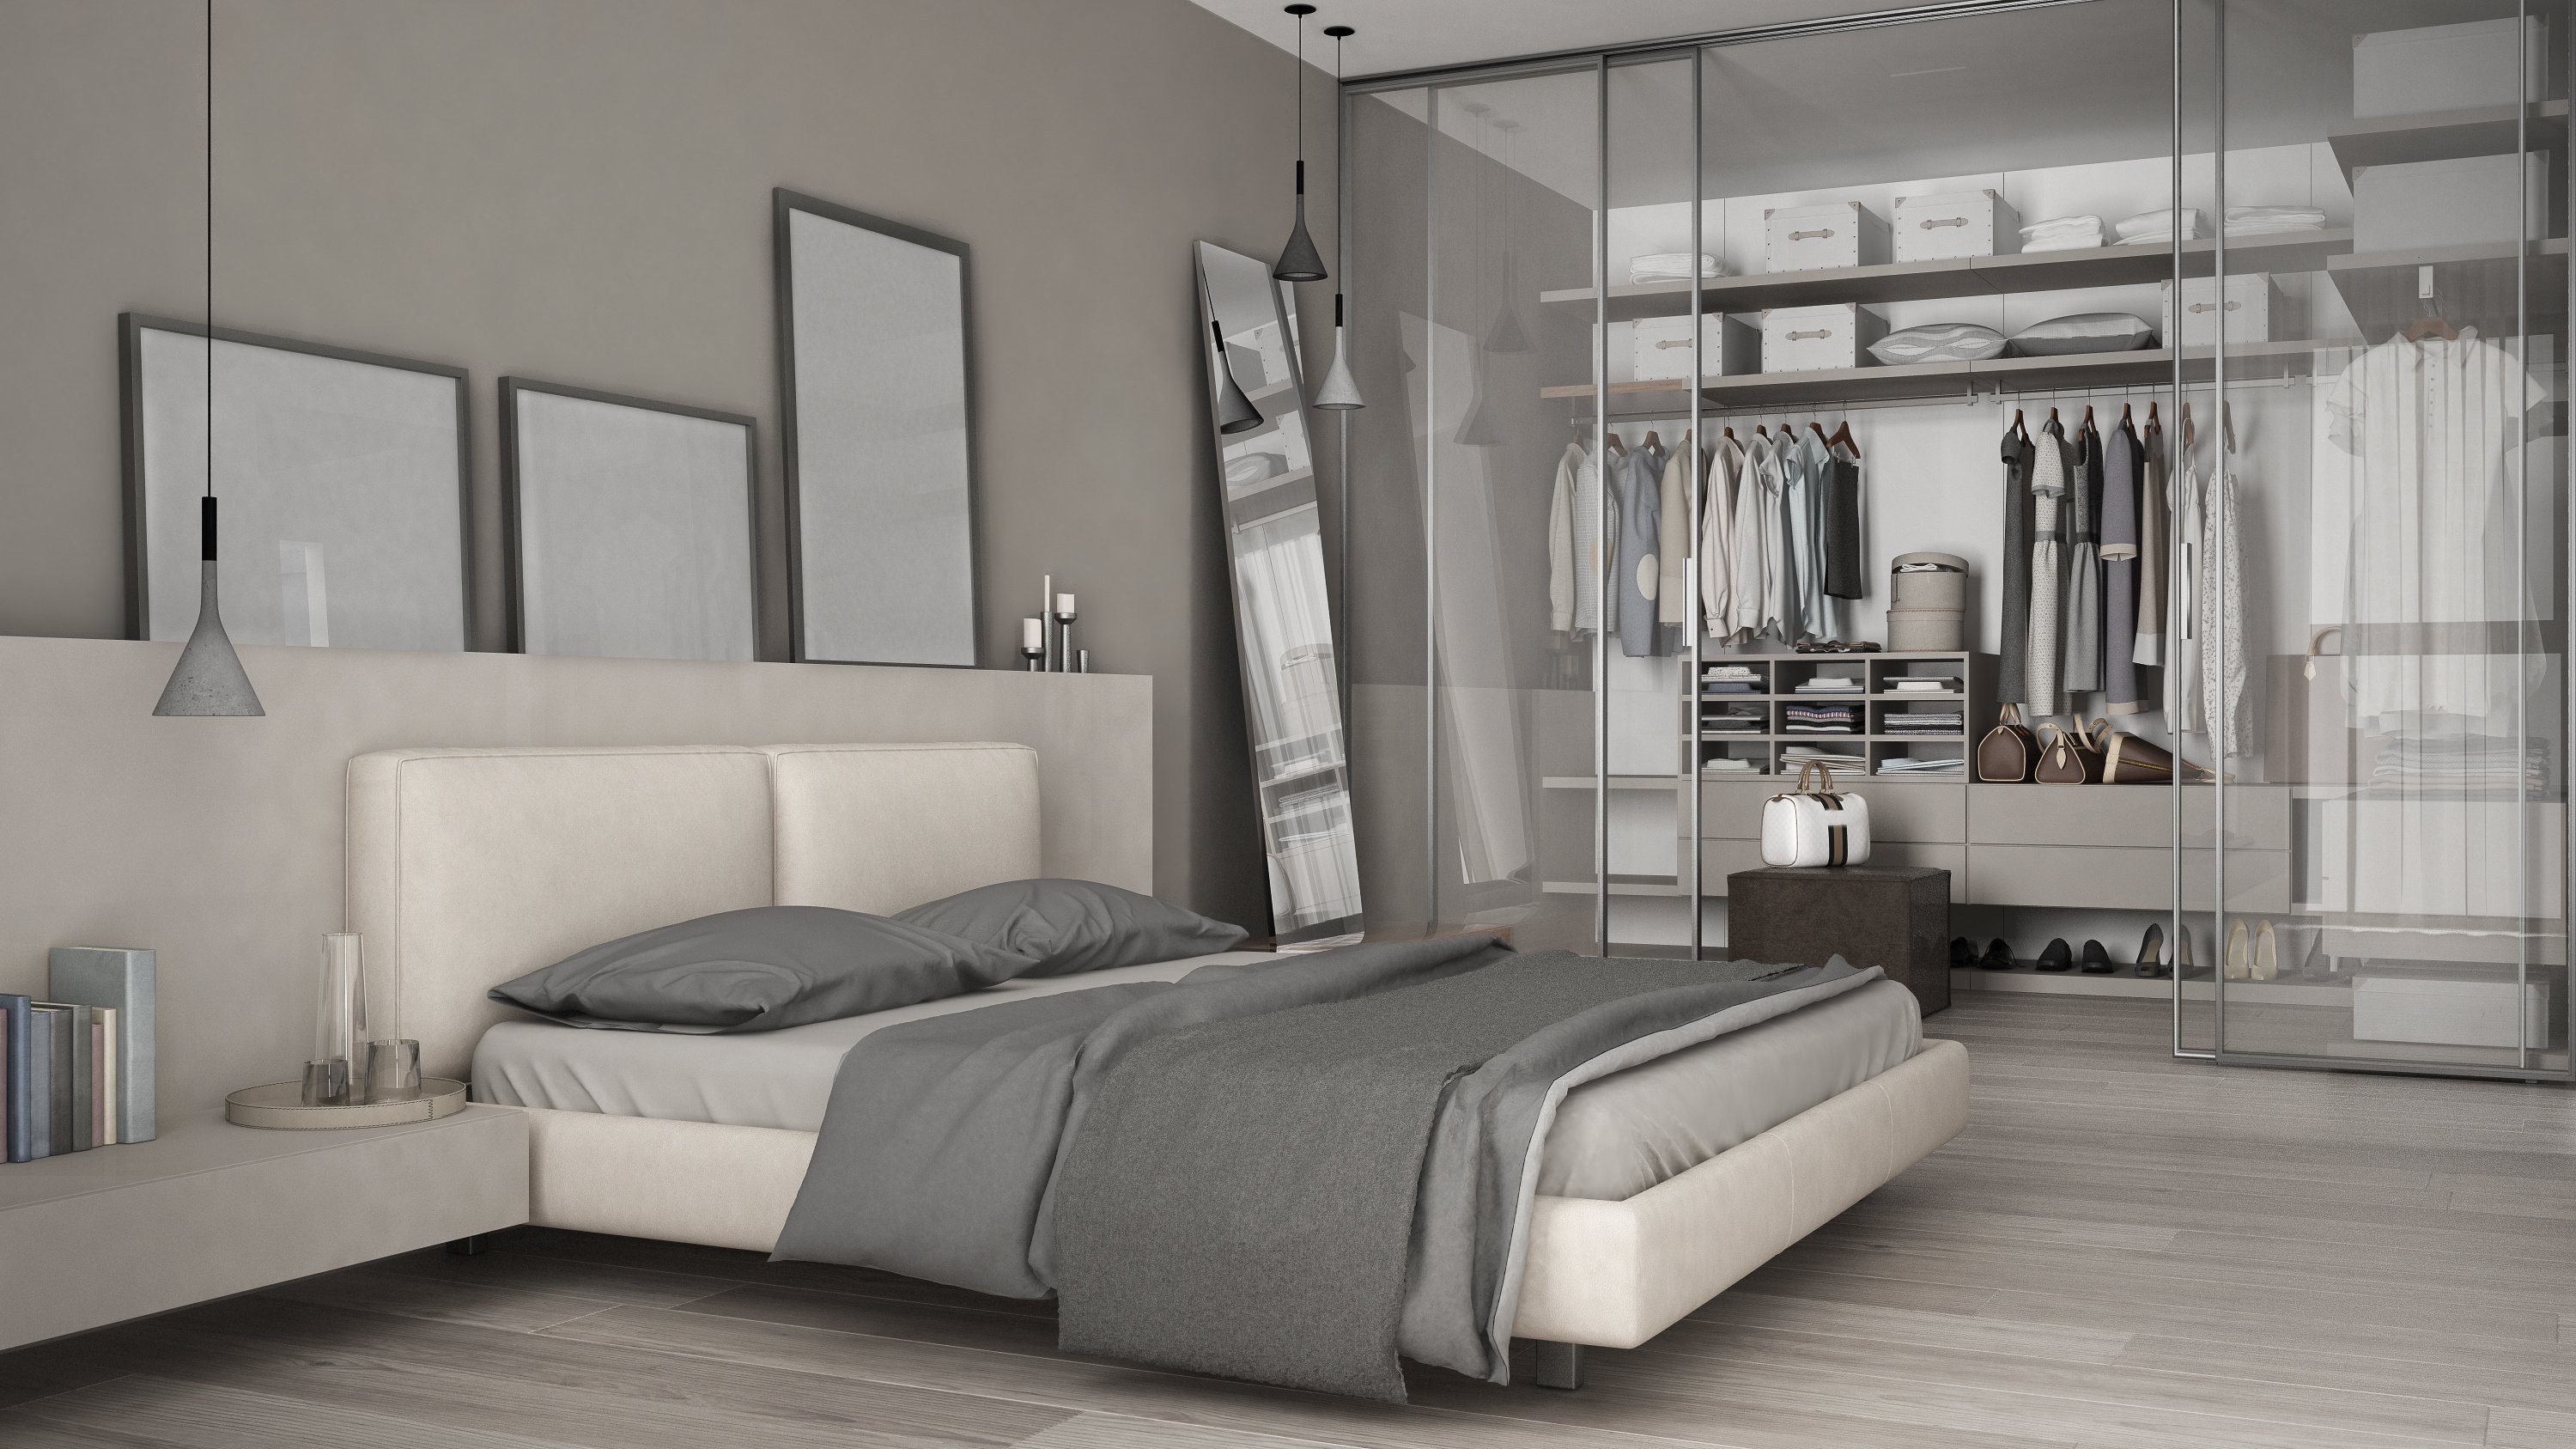 5 Tips To Design The Master Closet You Dream About